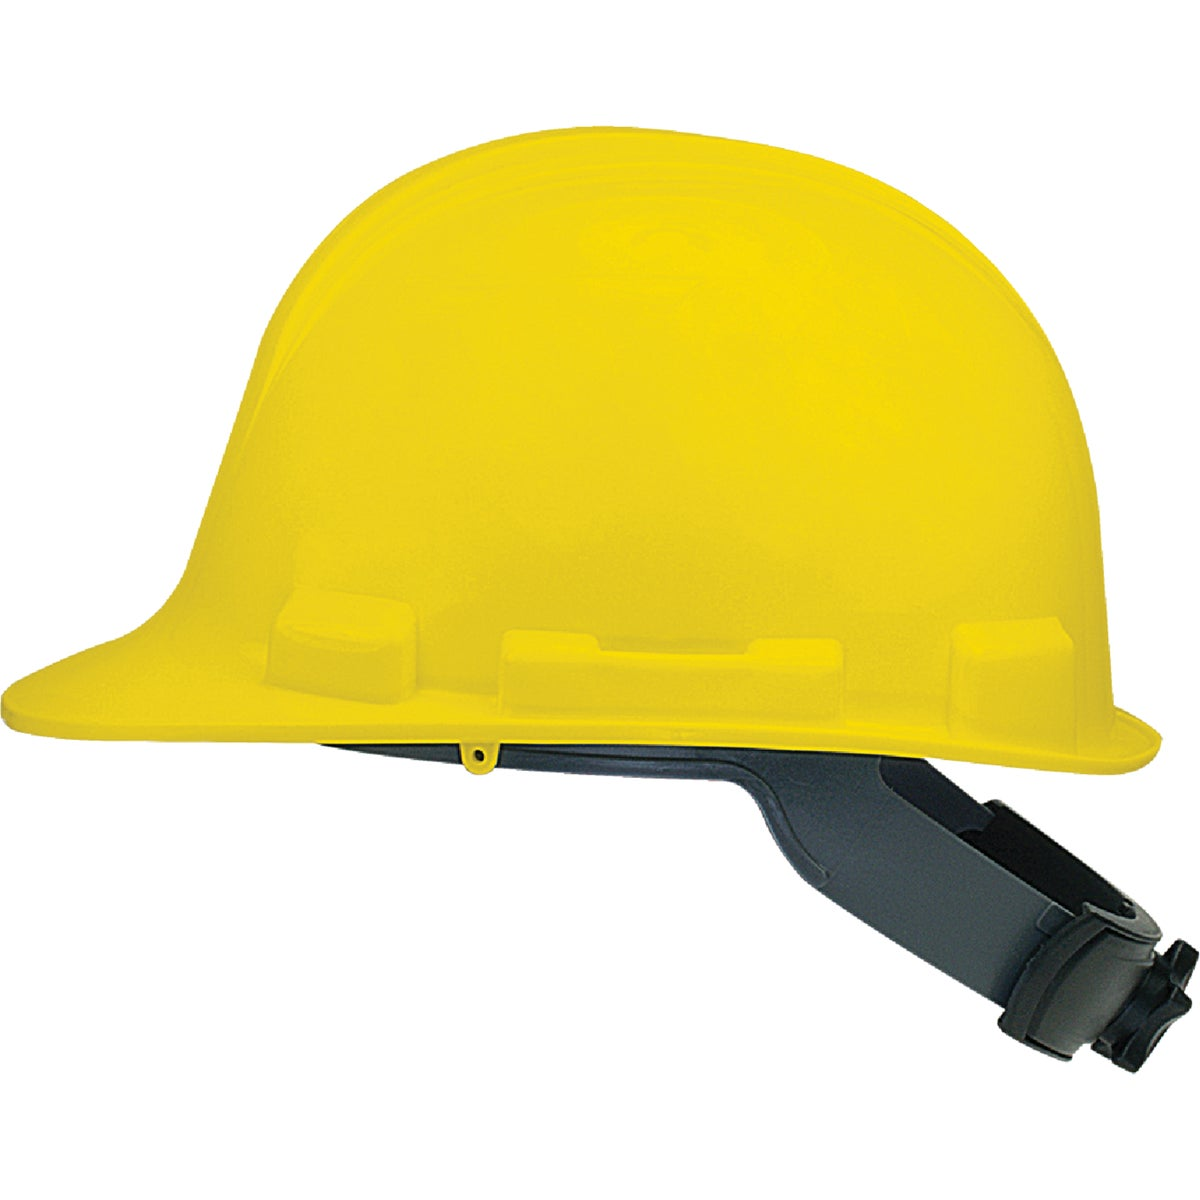 RATCHET YELLOW HARD HAT